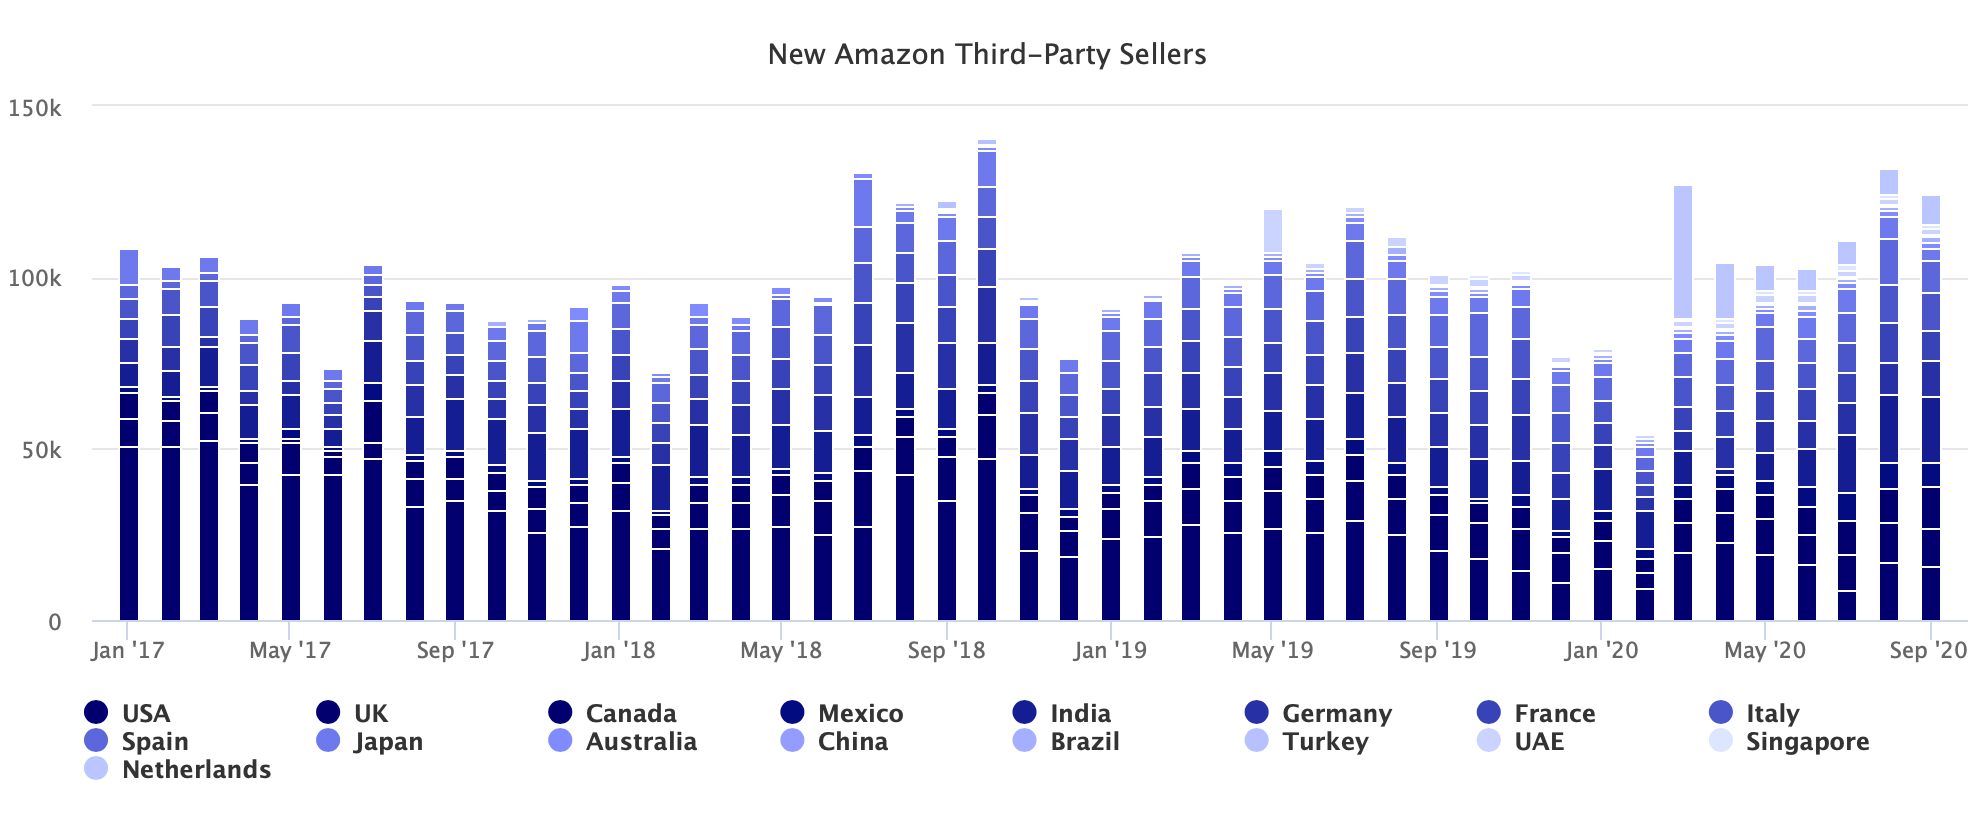 New Amazon Third-Party Sellers